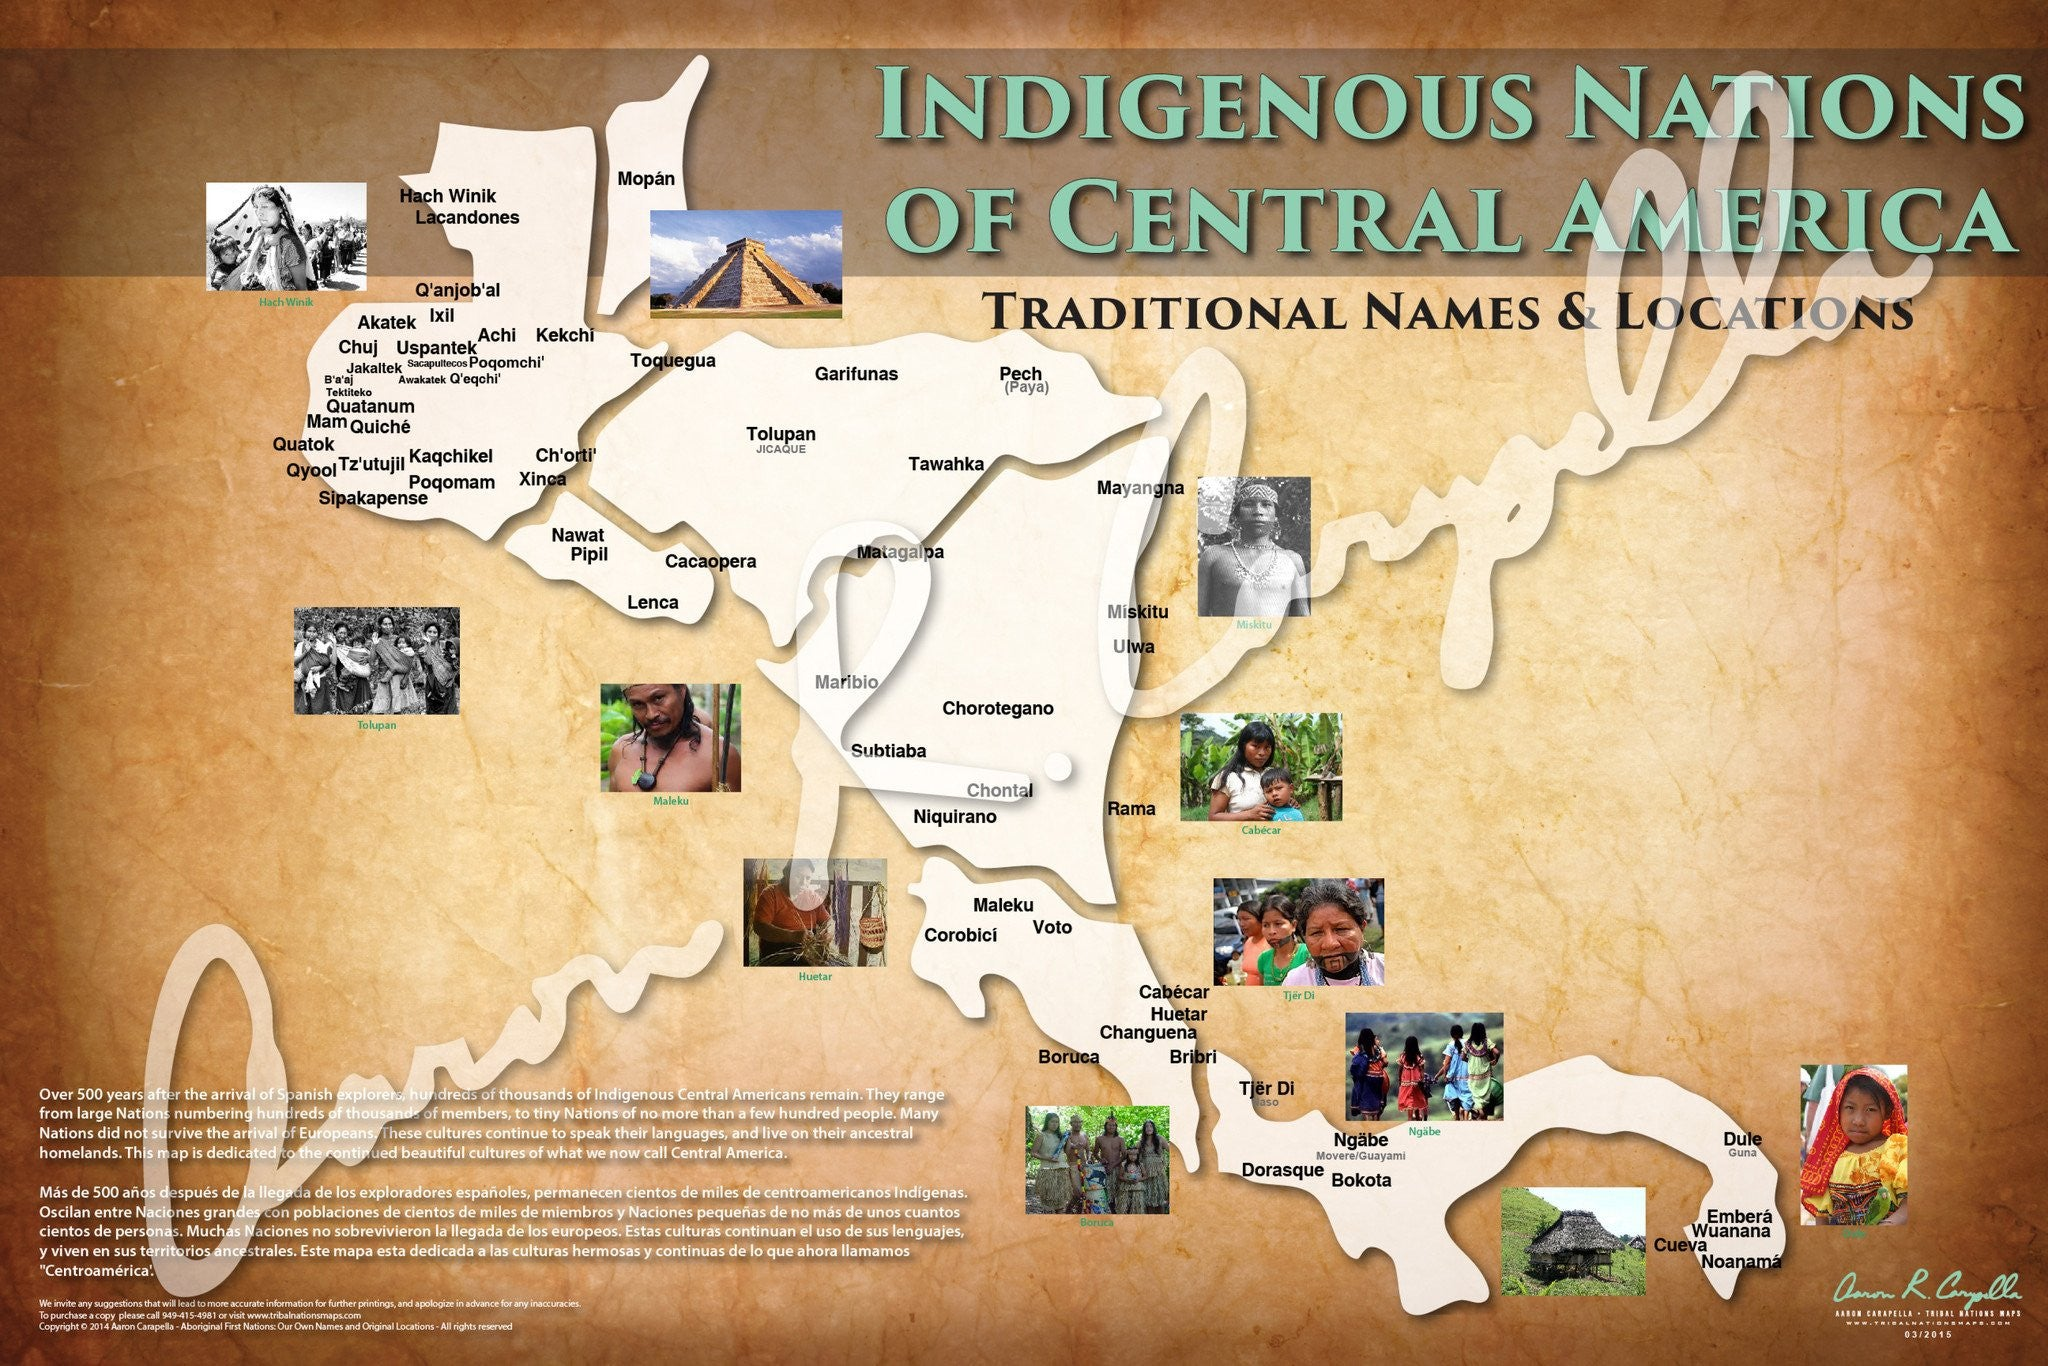 Indigenous Nations of Central America Map (Native and Common Names)